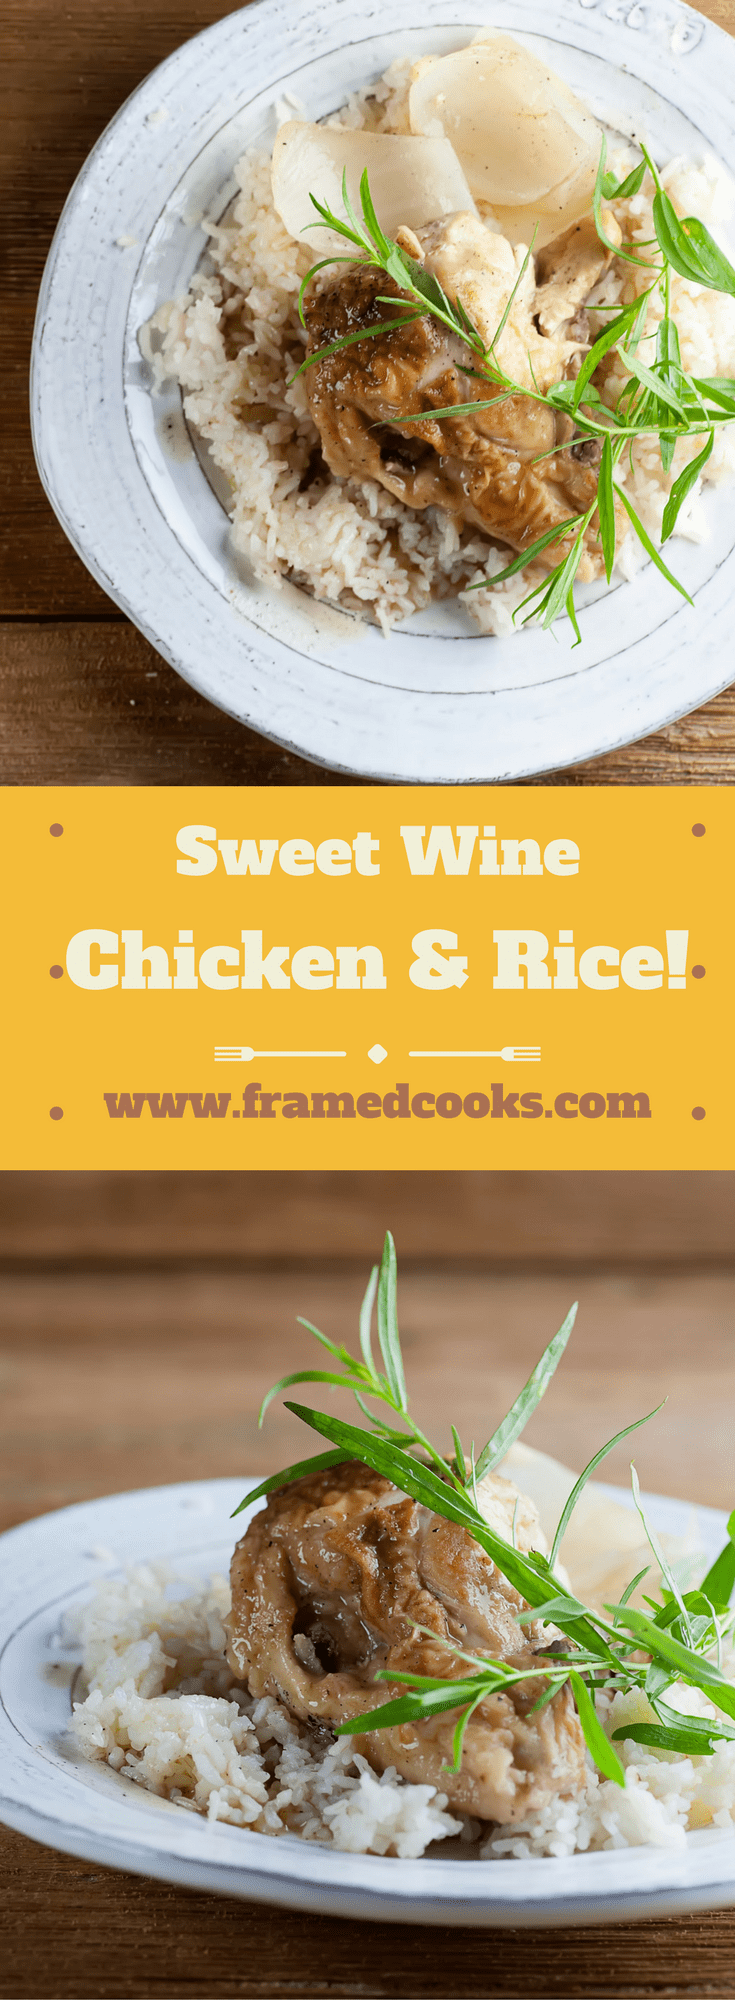 This easy recipe for sweet wine chicken and rice takes this comfort food supper classic to a new level of elegance with the addition of wine and tarragon.